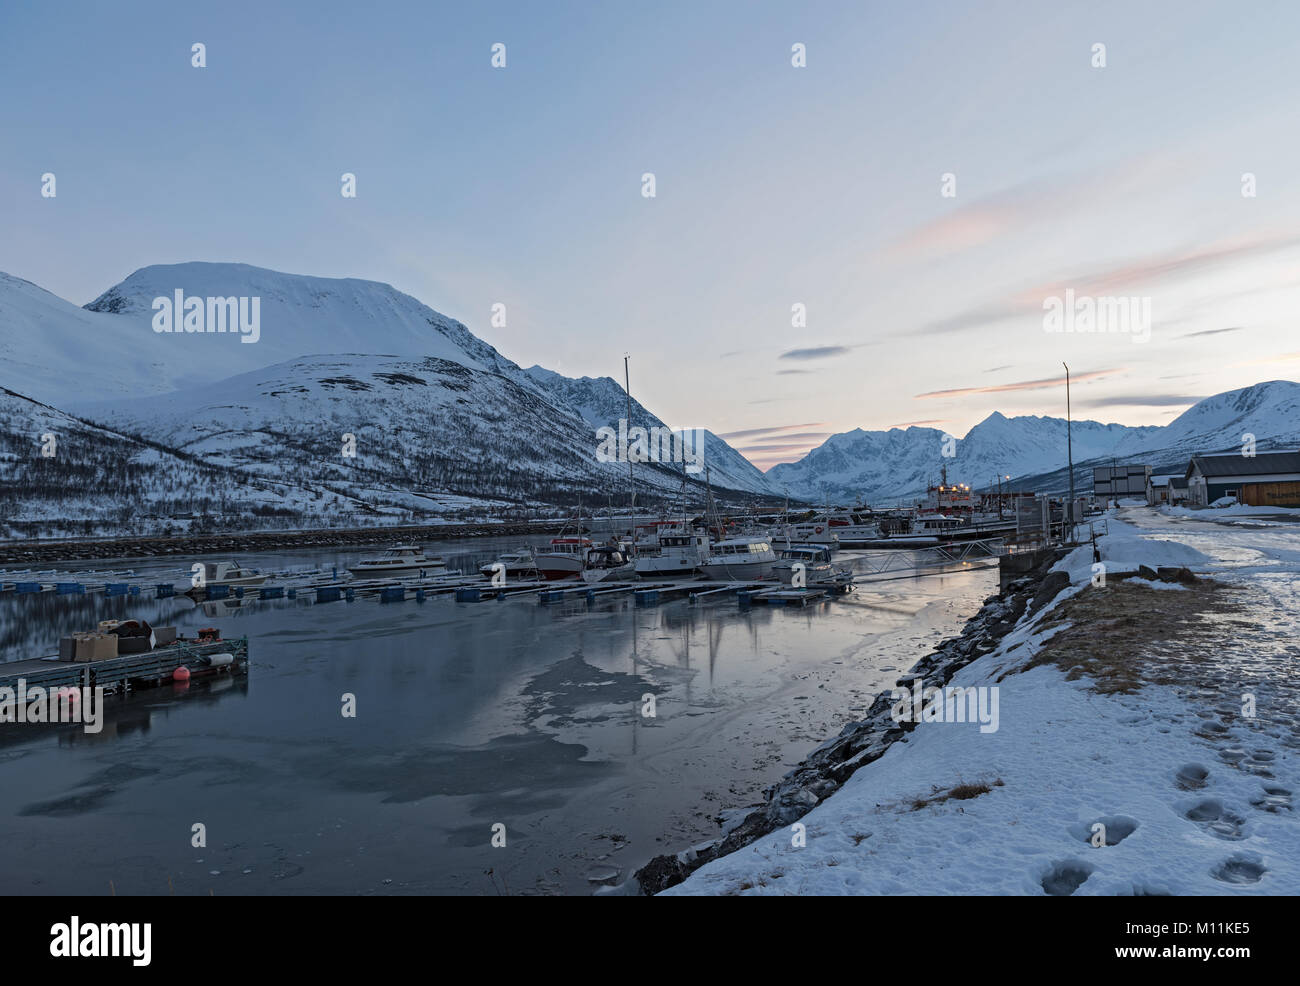 Boats in the sheltered harbor at Nord-Lenangen, Lyngen, Troms county, Norway Stock Photo